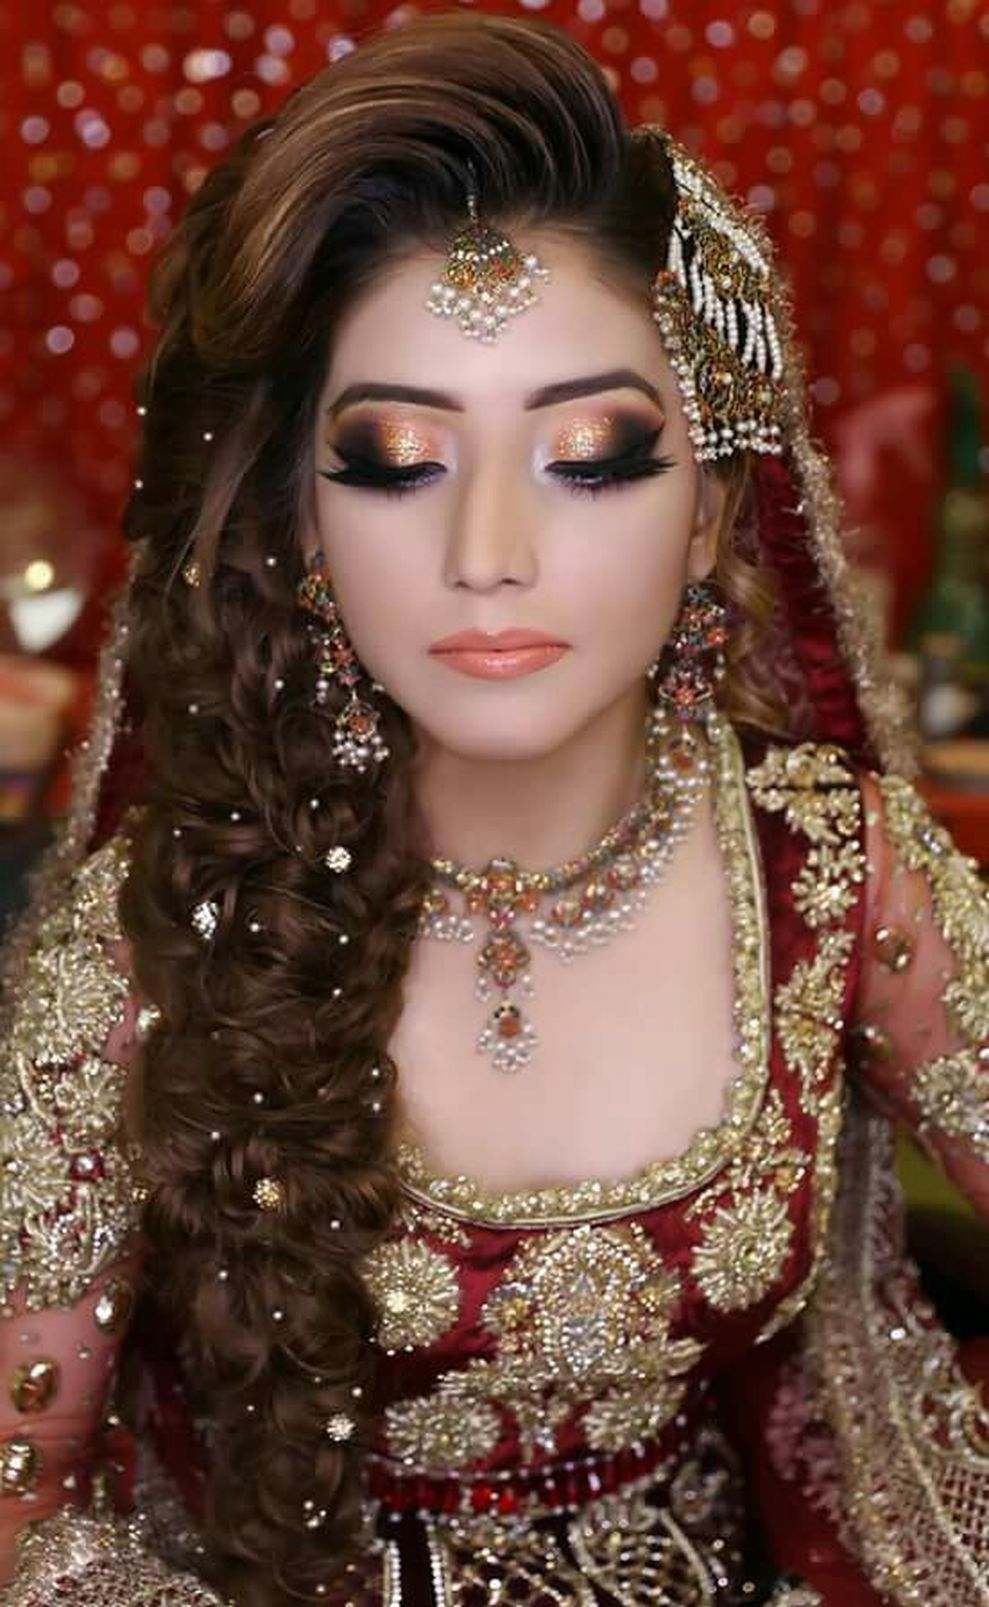 Awesome 48 Stylish Wedding Hairstyle Ideas For Indian Bride Https